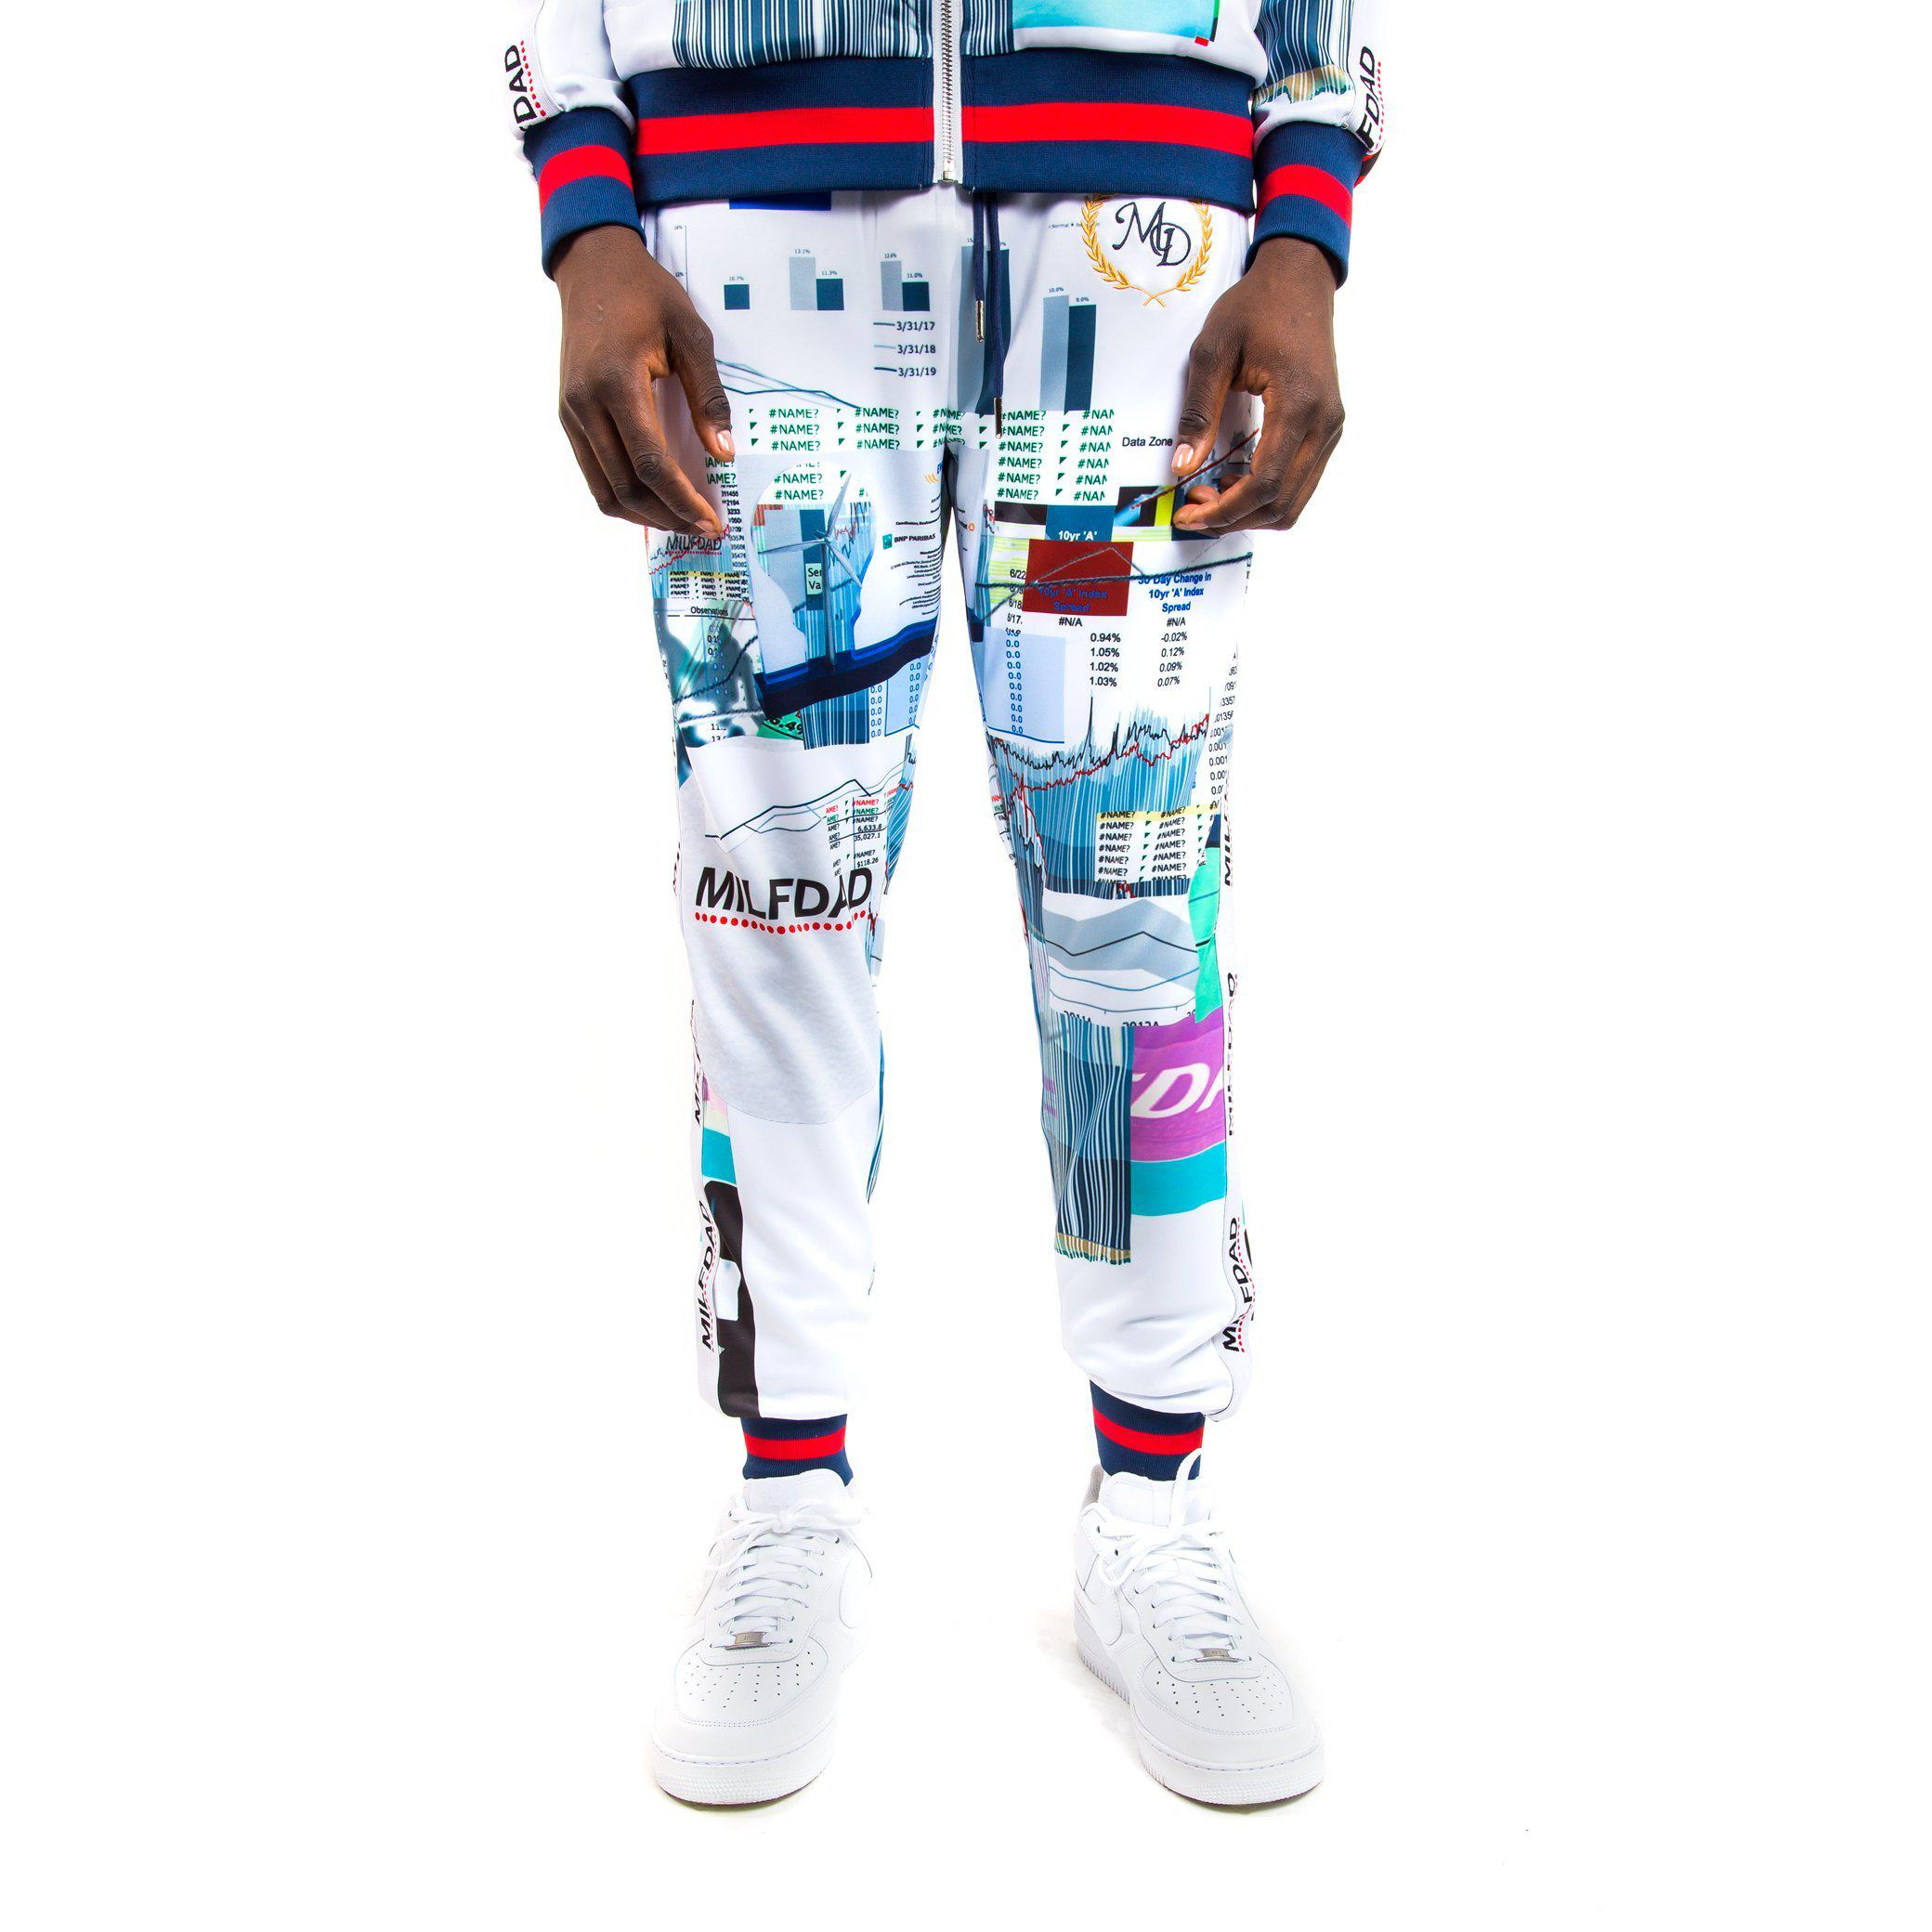 TRACK PANT - SPREADSHEET/WHITE-MILFDAD